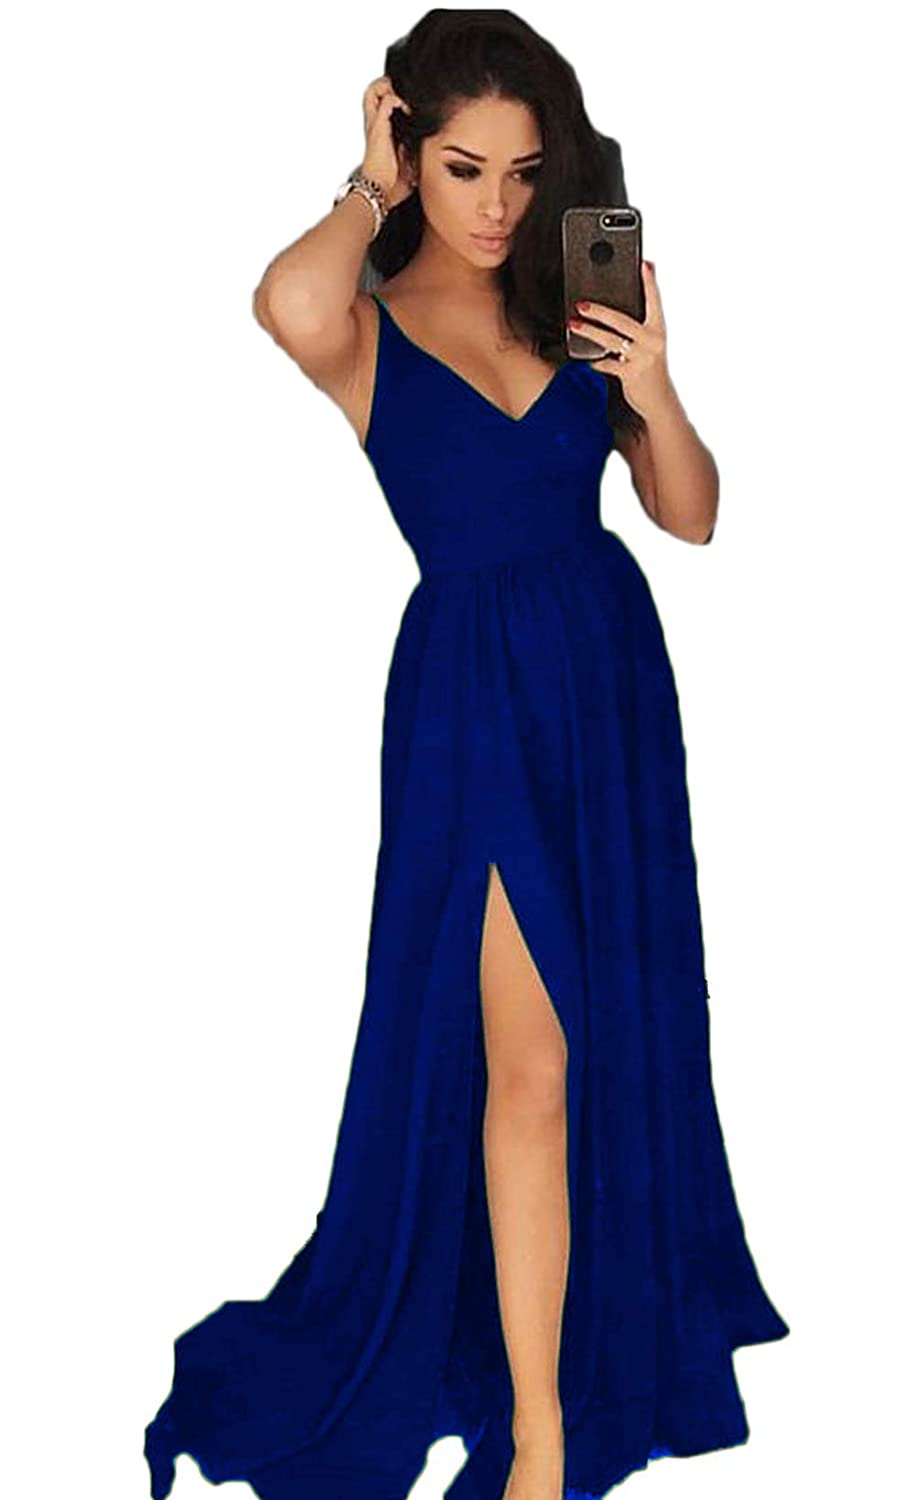 Royal bluee YMSHA Women's Long V Neck Prom Dresses with Split Satin Formal Party Gown 43PM